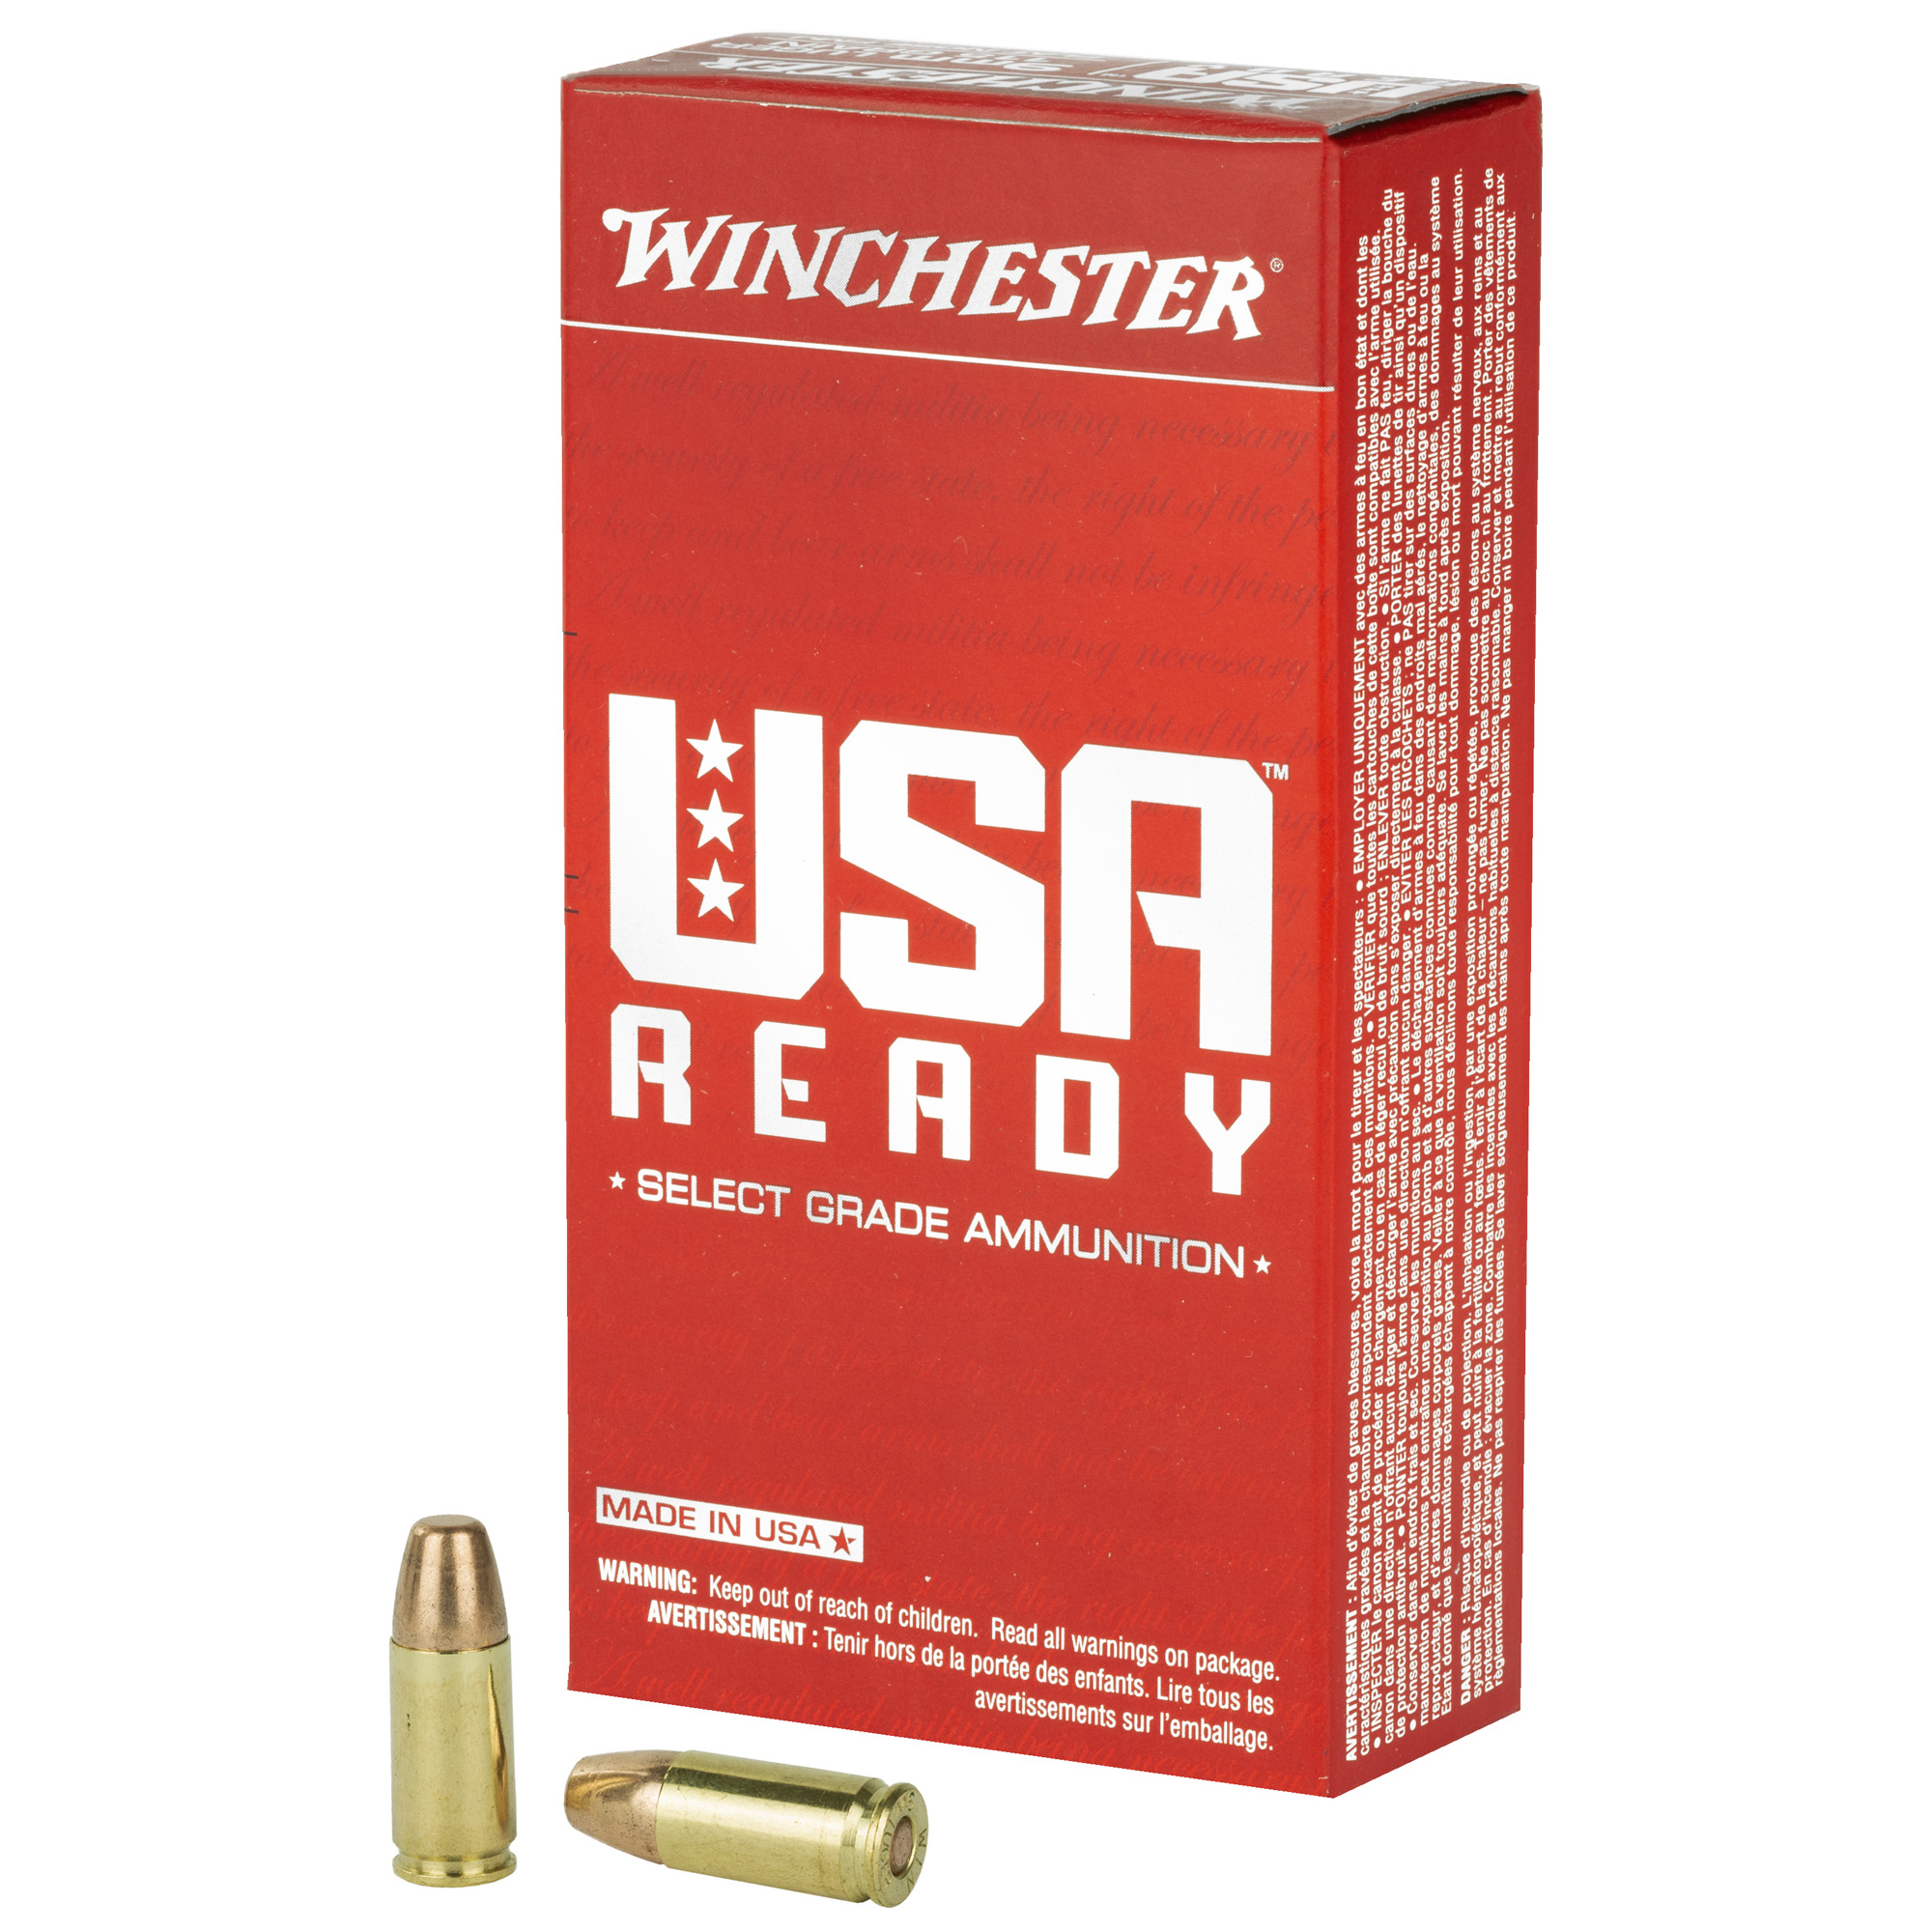 Winchester Ammo RED9 USA Ready 9mm Luger 115 gr Full Metal Jacket Flat Nose